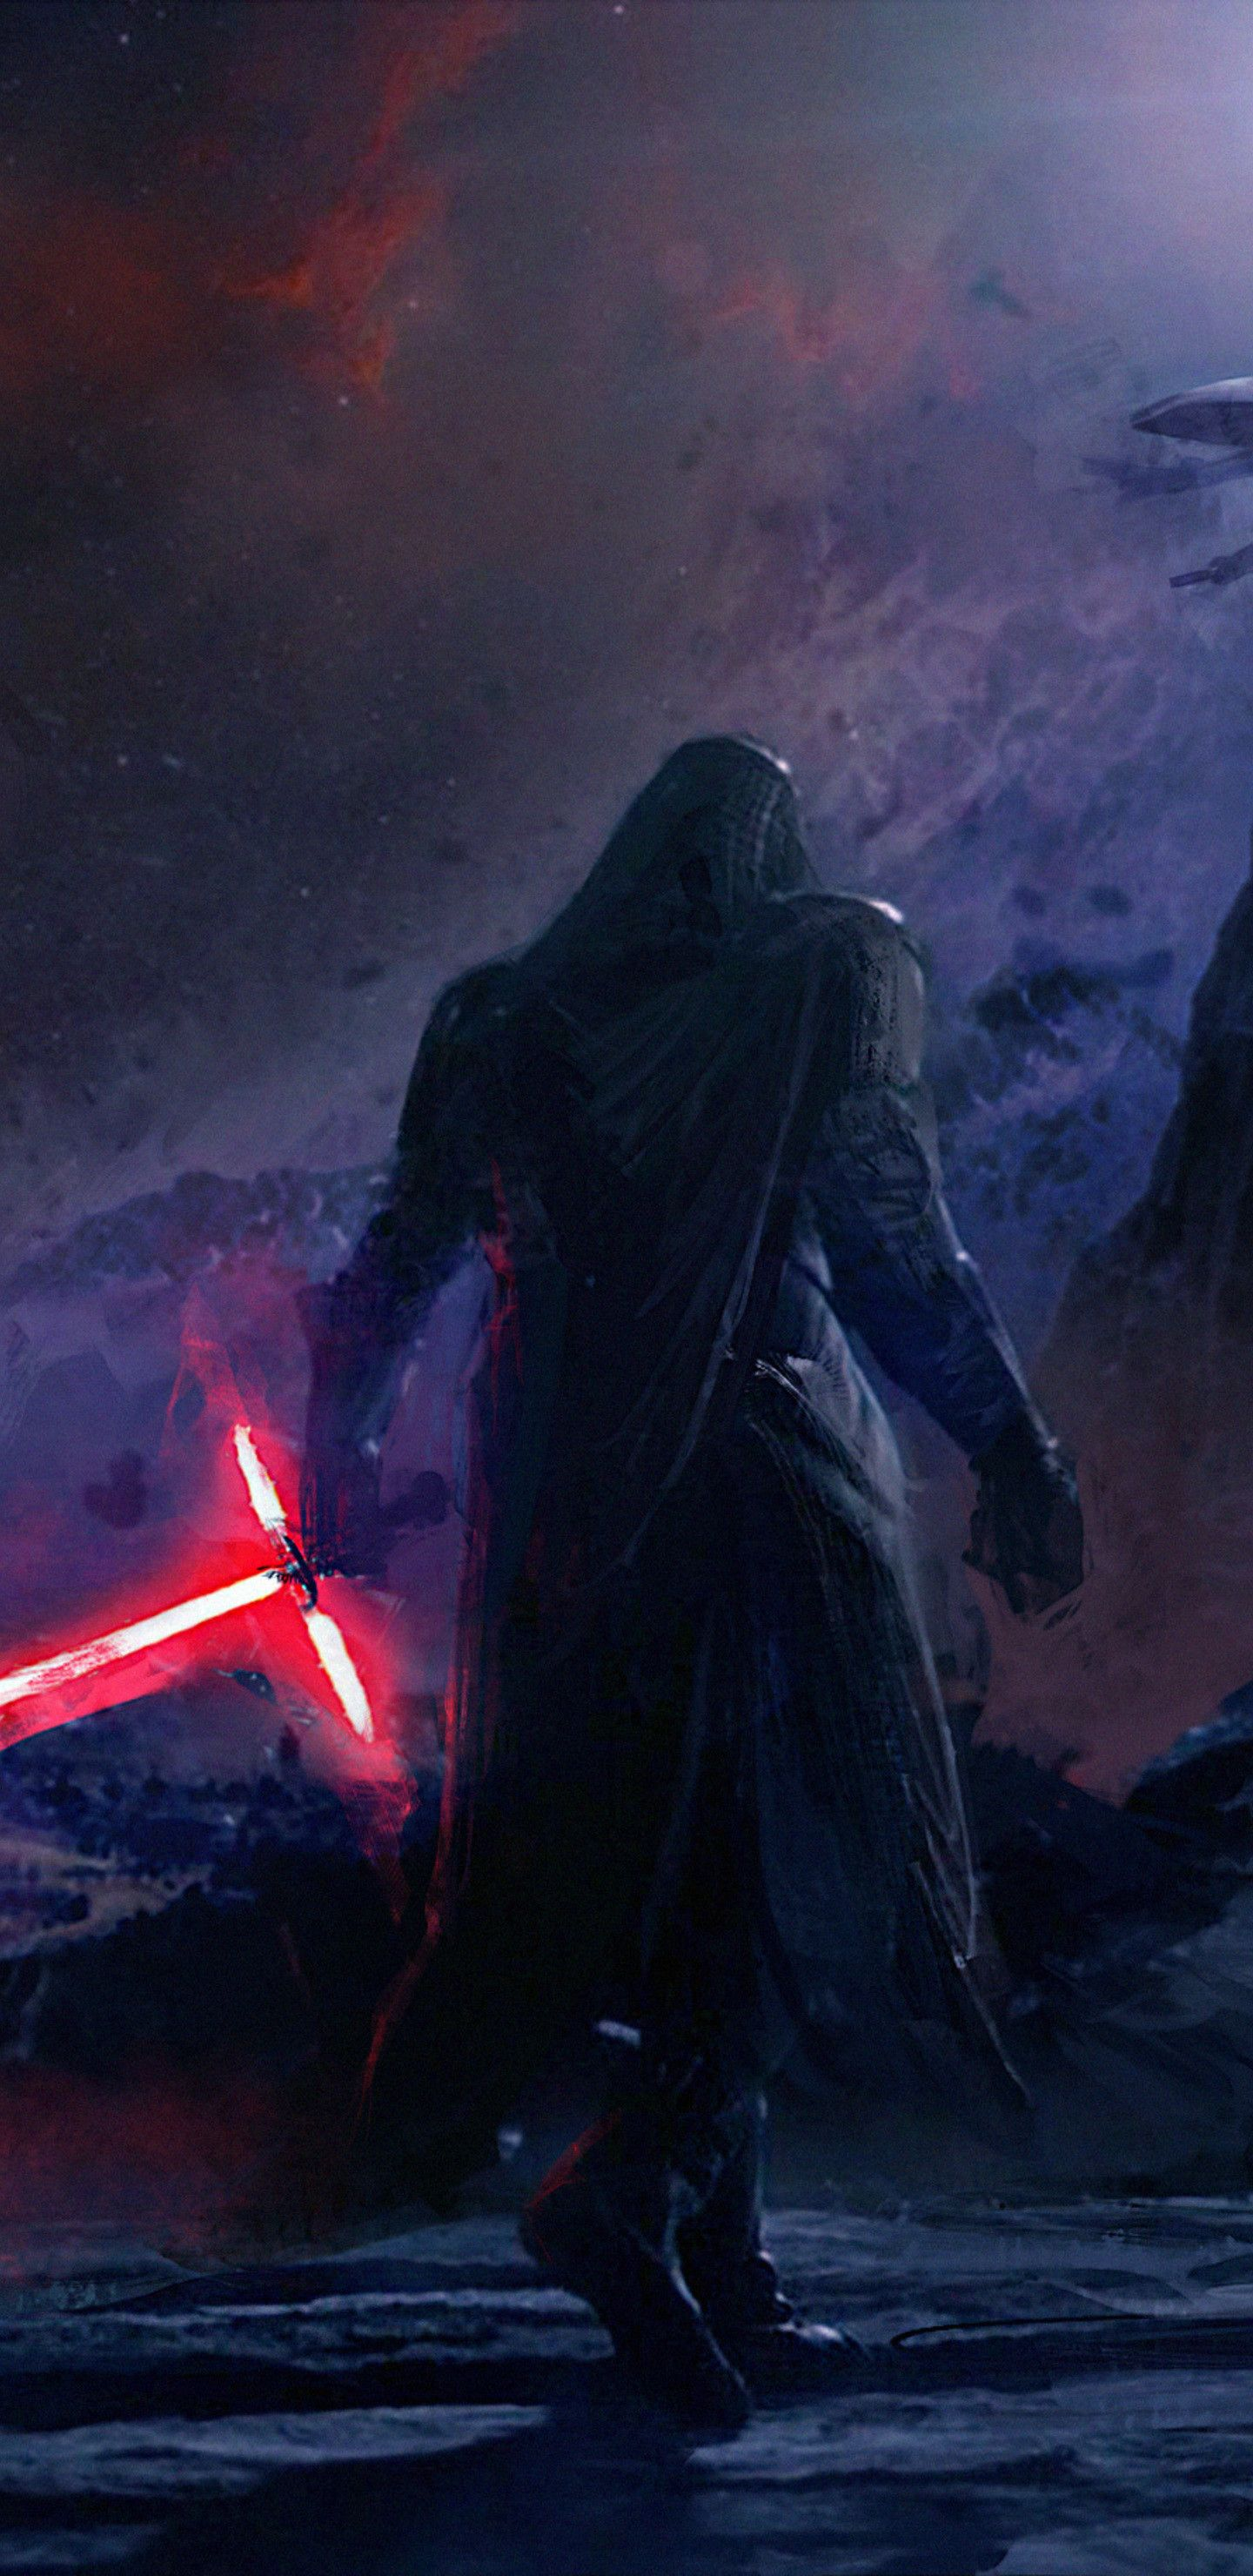 292 2927231 kylo ren wallpaper data src full 1443378 star